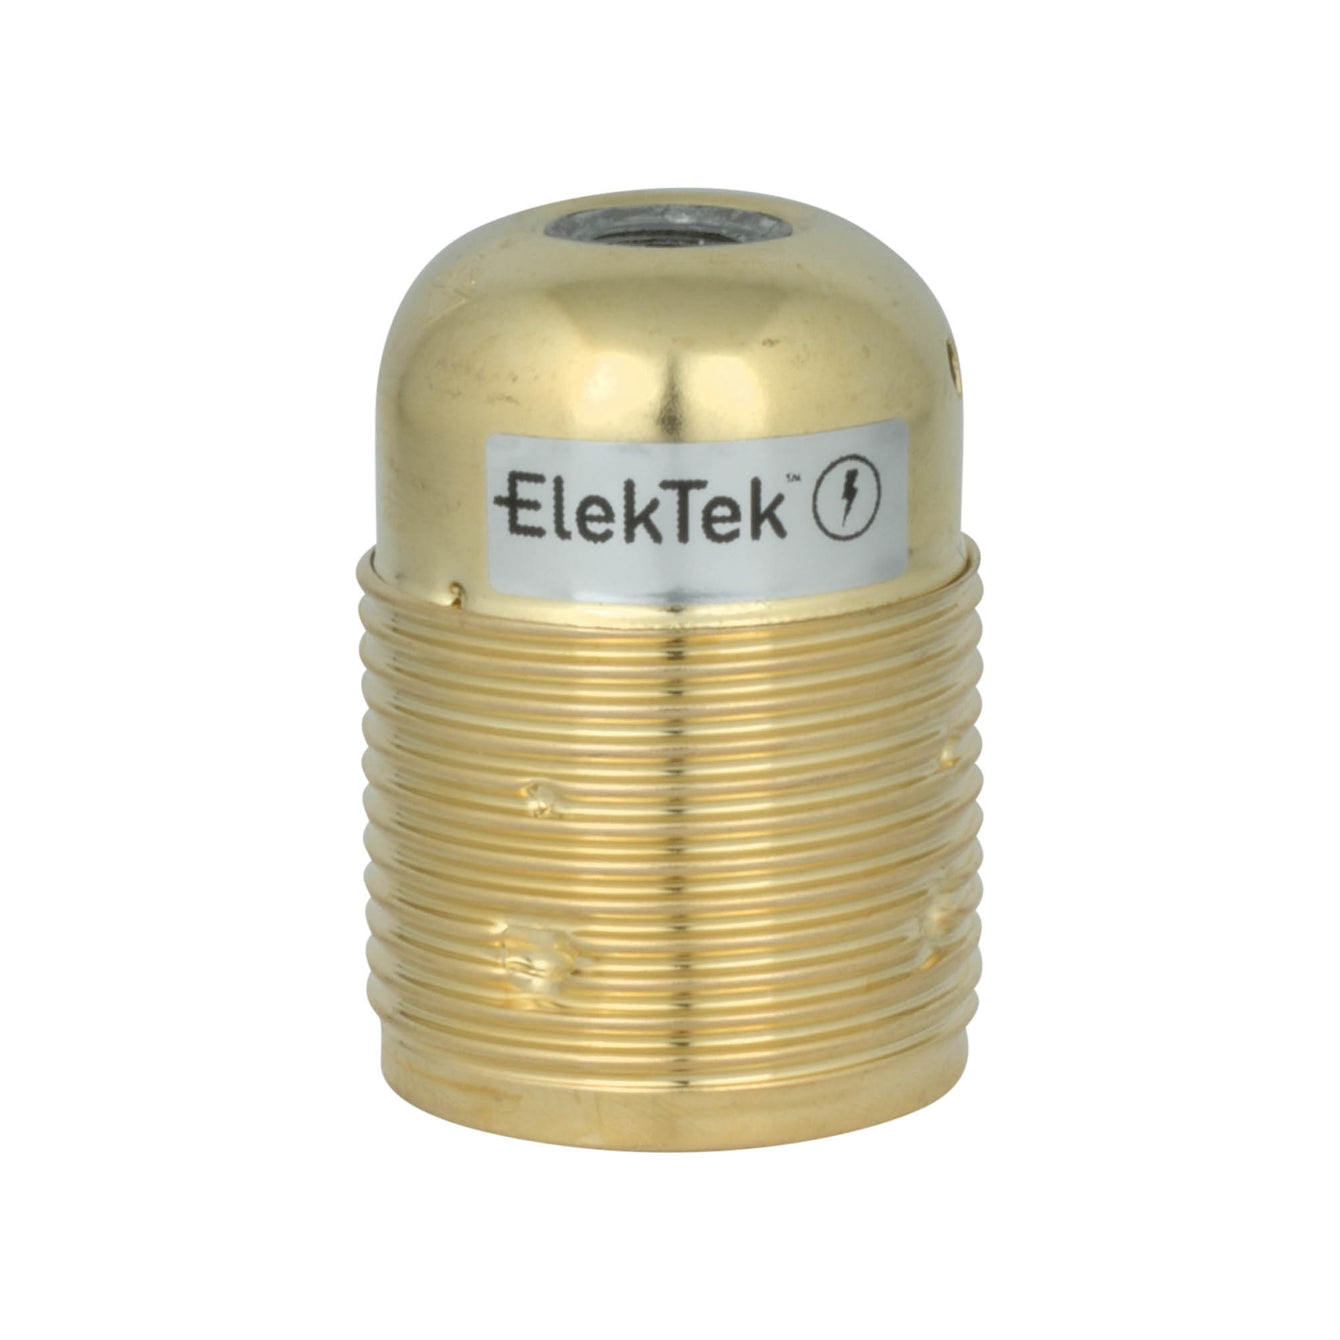 ElekTek ES Edison Screw E27 Economy Cord Grip Lamp Holder With Shade Ring - Buy It Better Copper